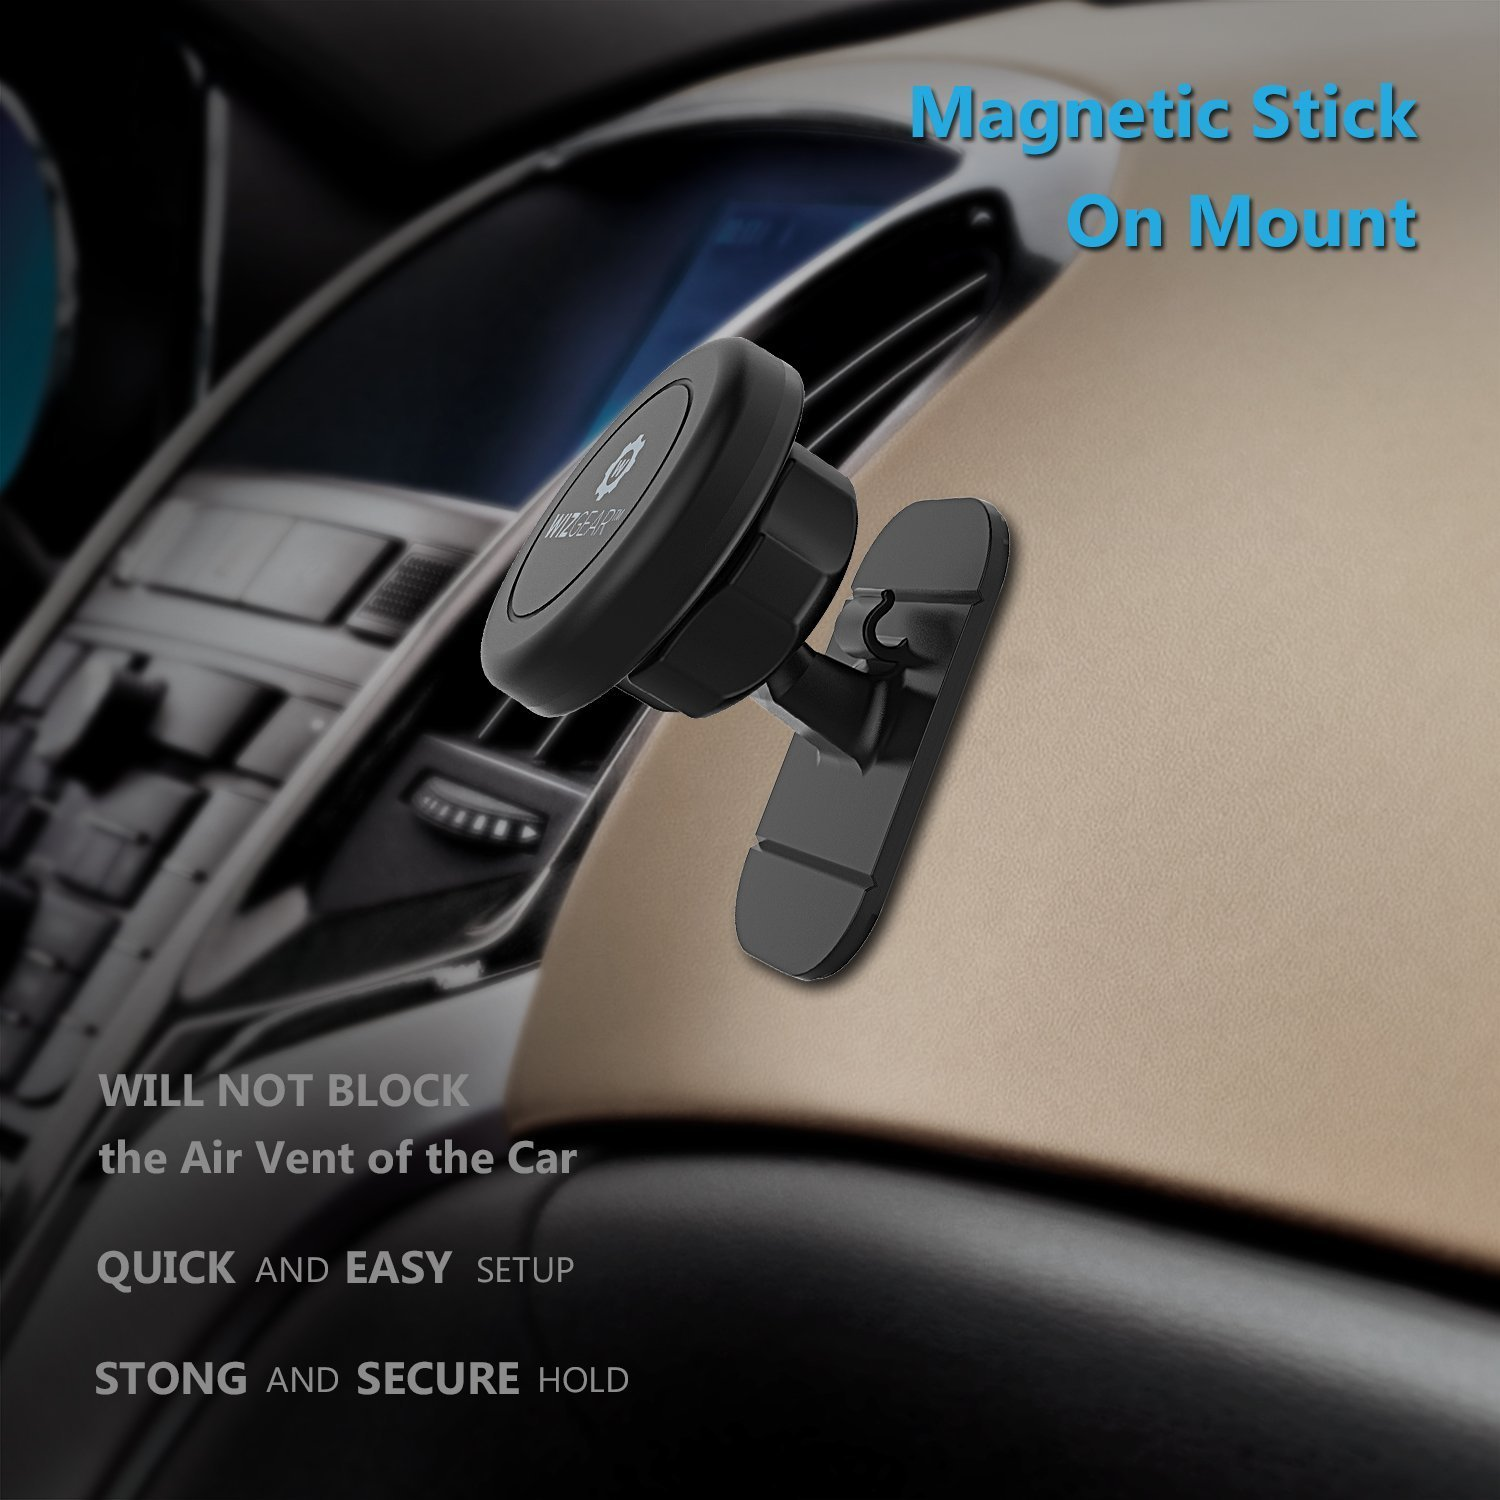 2 Pack for Cell Phones and Mini Tablets with Fast Swift-snap Technology WizGear Universal Stick On Magnetic Mount Magnetic Cell Phone Mount Magnetic stick on -mount Dashboard Magnetic Car Mount Holder